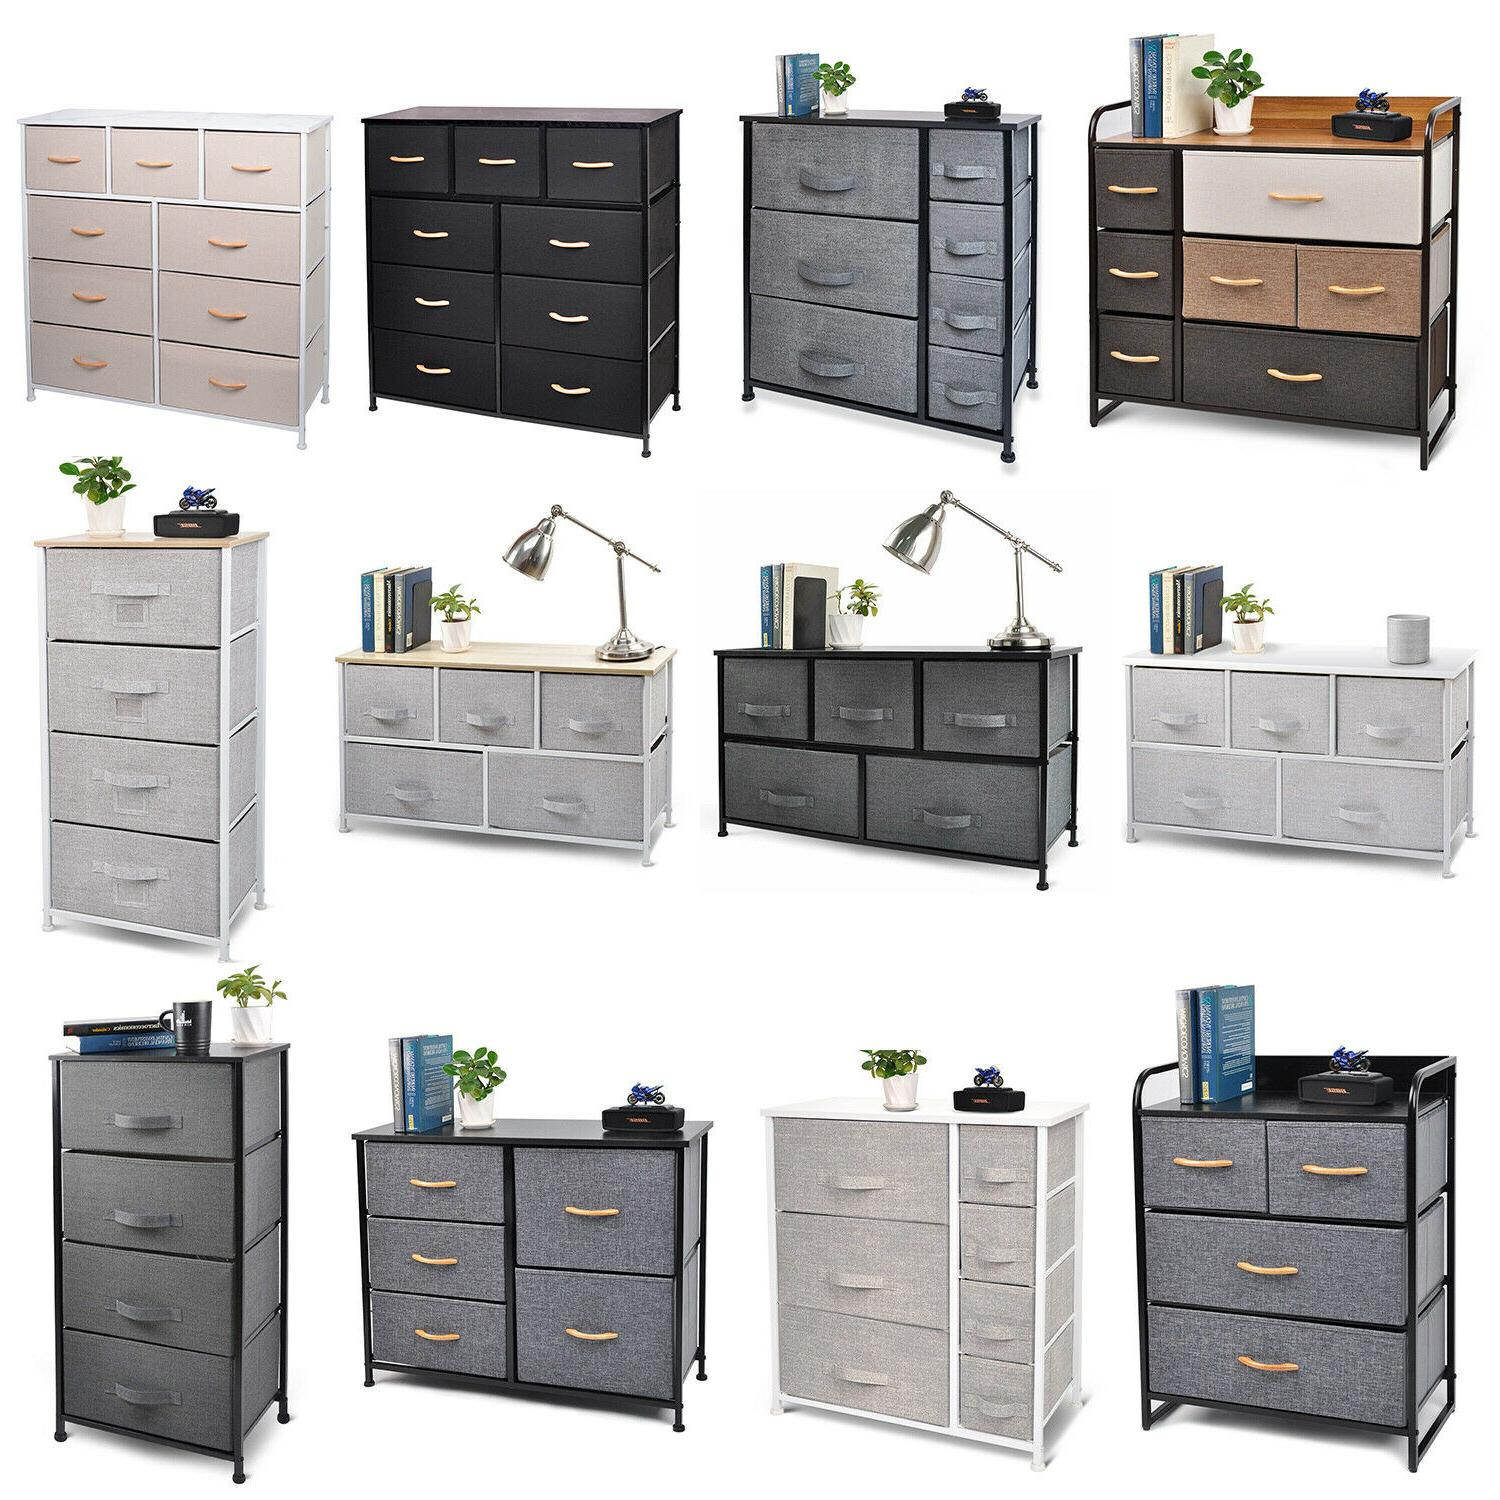 bedroom storage dresser tower shelf organizer bins